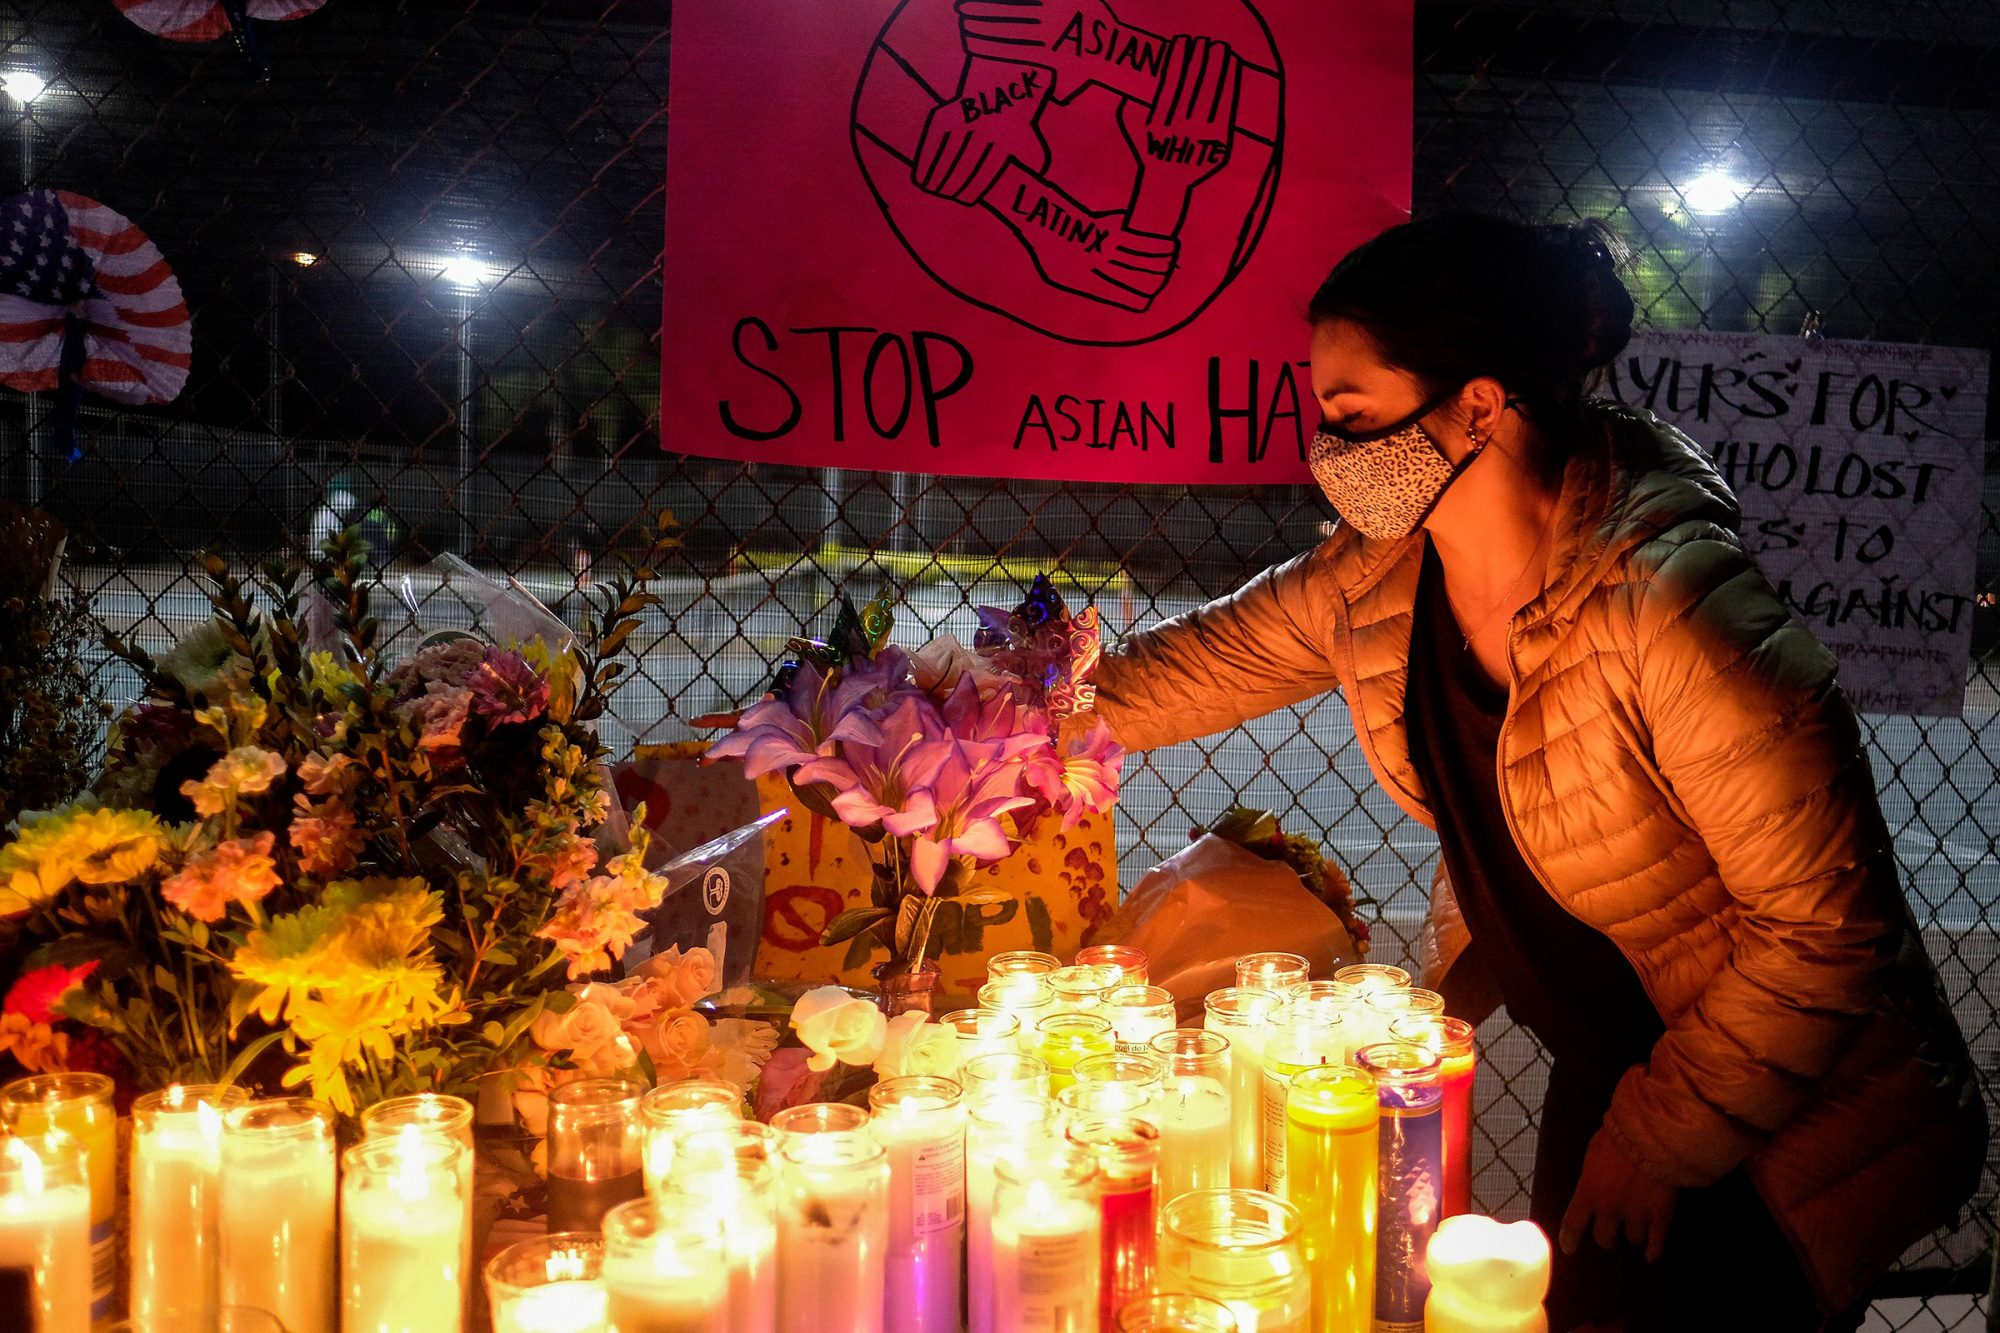 A woman places an anti-hate sign during a candlelight vigil in standing up against Asian American Pacific Islander (AAPI) hate and violence, at Almansor Park in Alhambra, California, on March 20, 2021